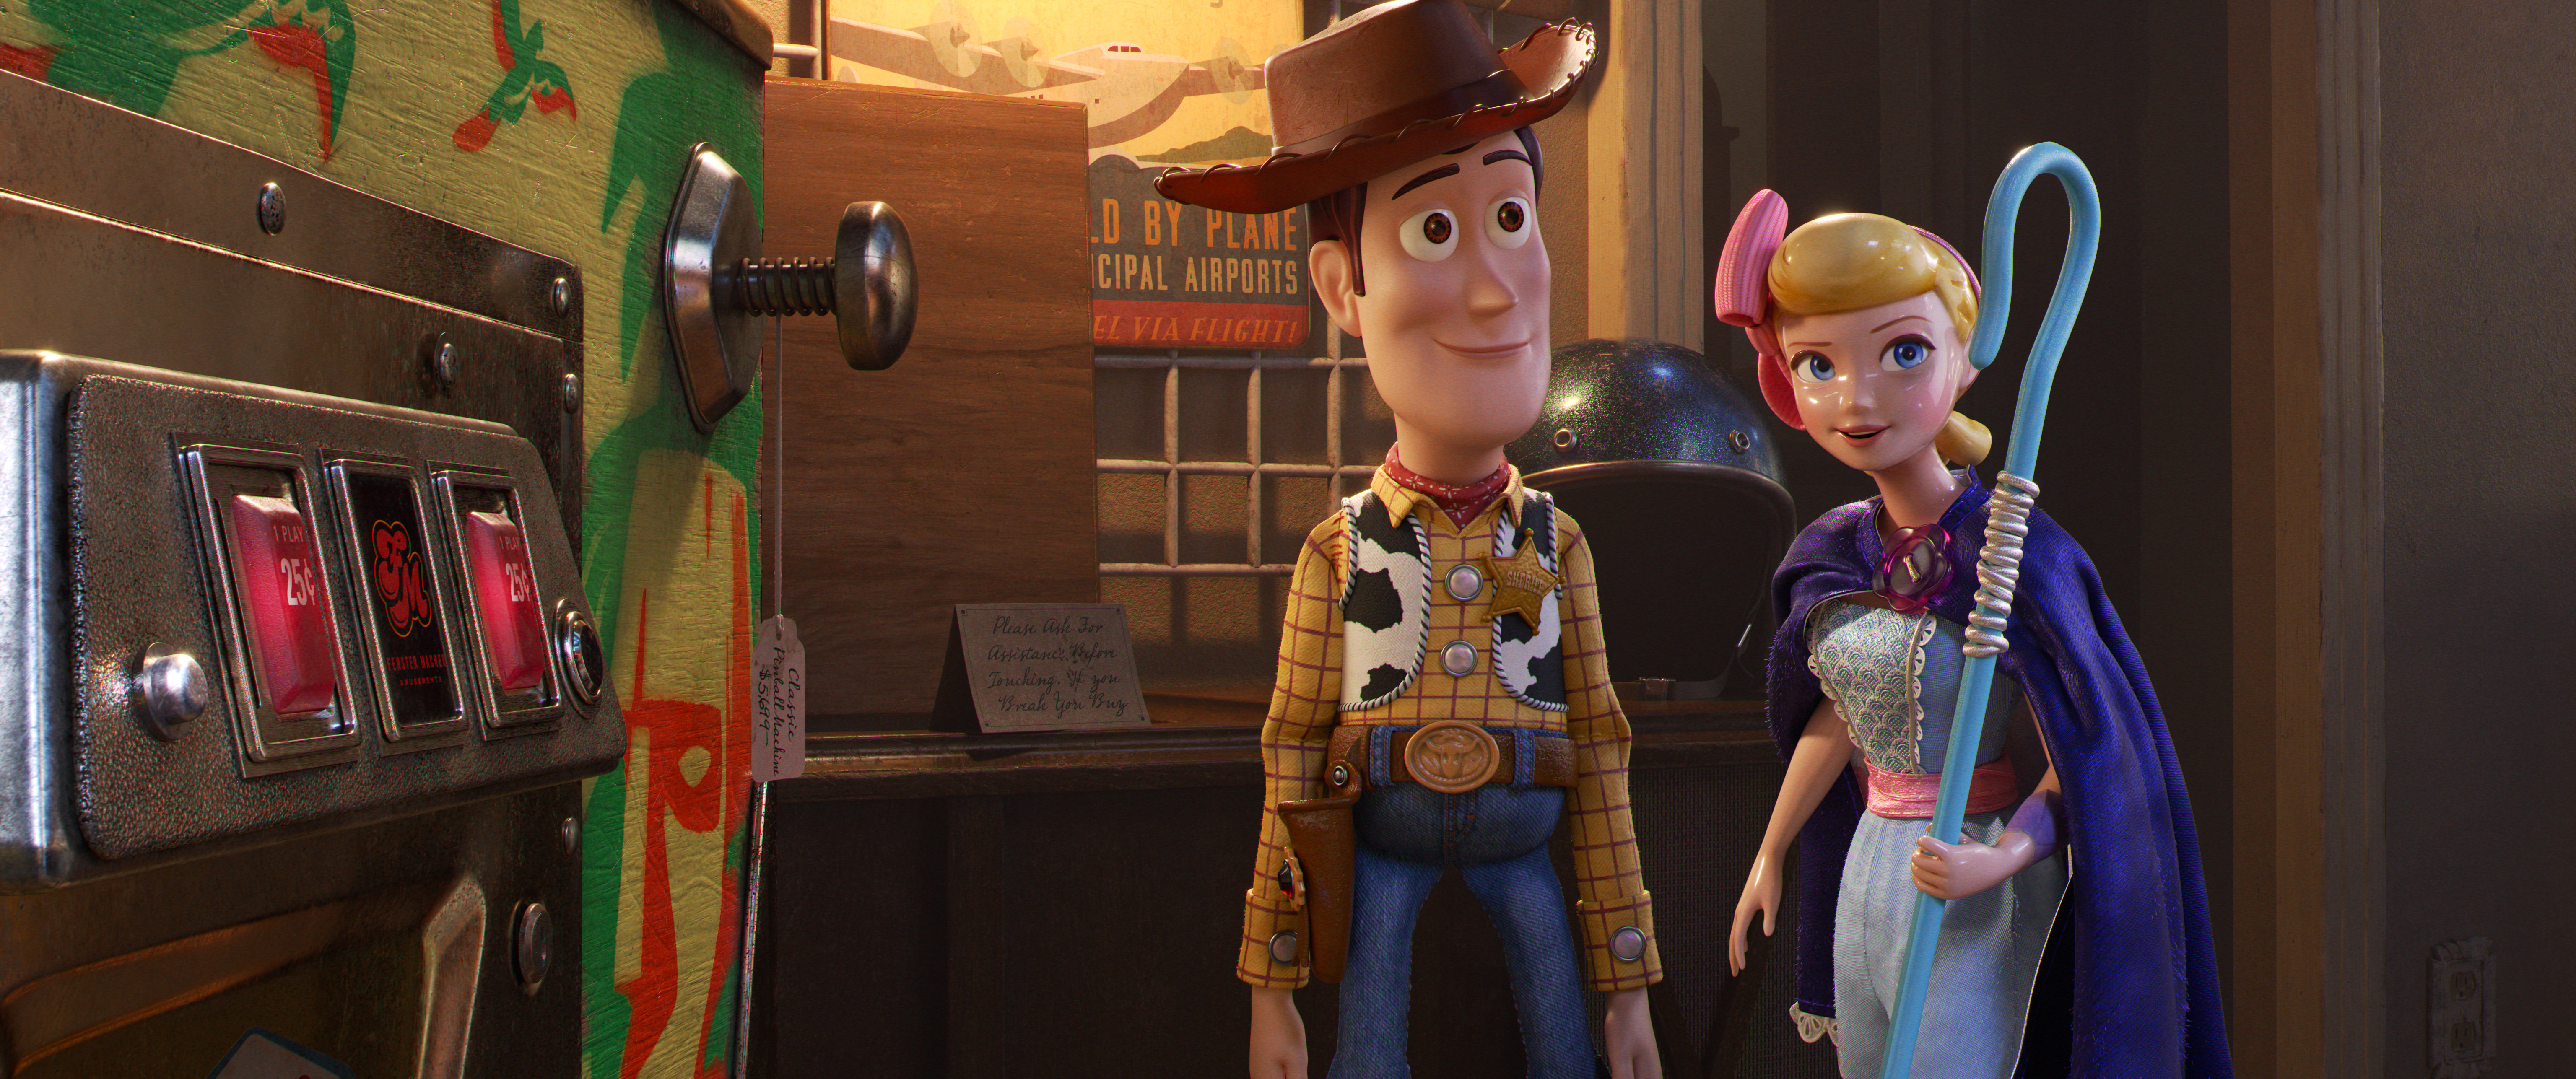 Woody and Bo Peep Toy story 4